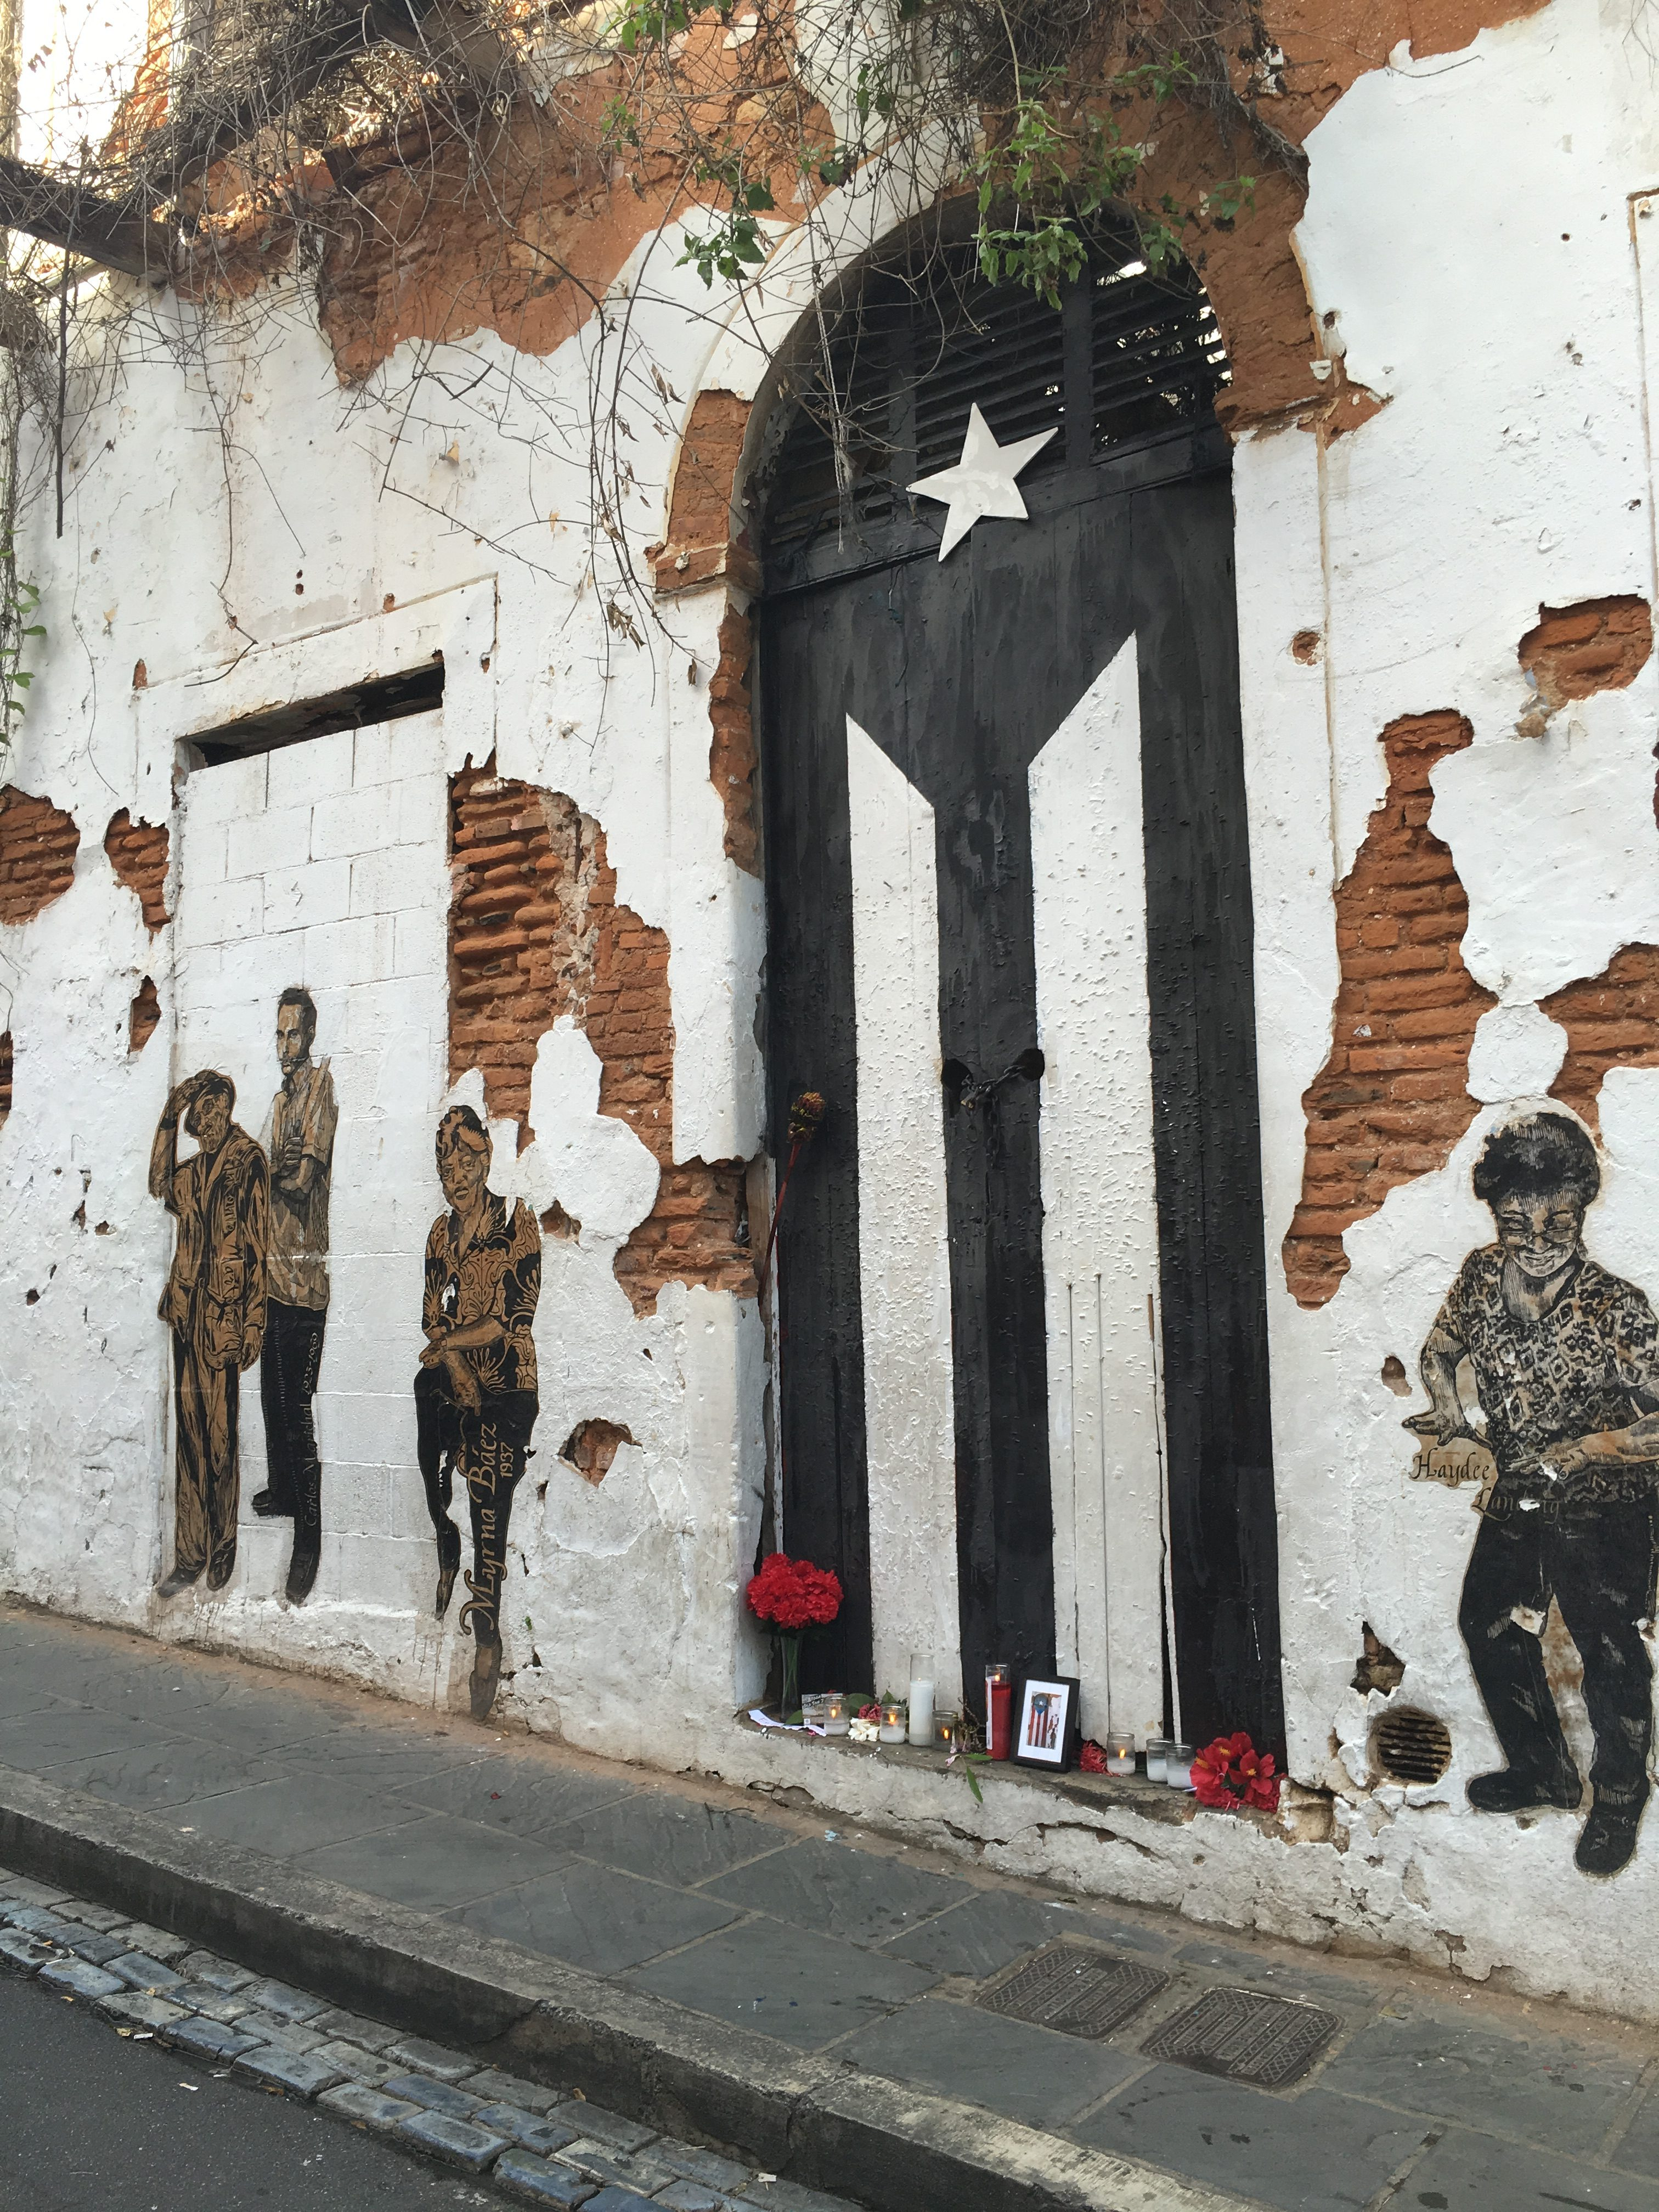 The famous door in Old San Juan now has the Puerto Rican flag painted in black and white, as a sign of mourning and resistance. There is also a small altar. Photo by Marina I. Pineda Shokooh, used with permission.